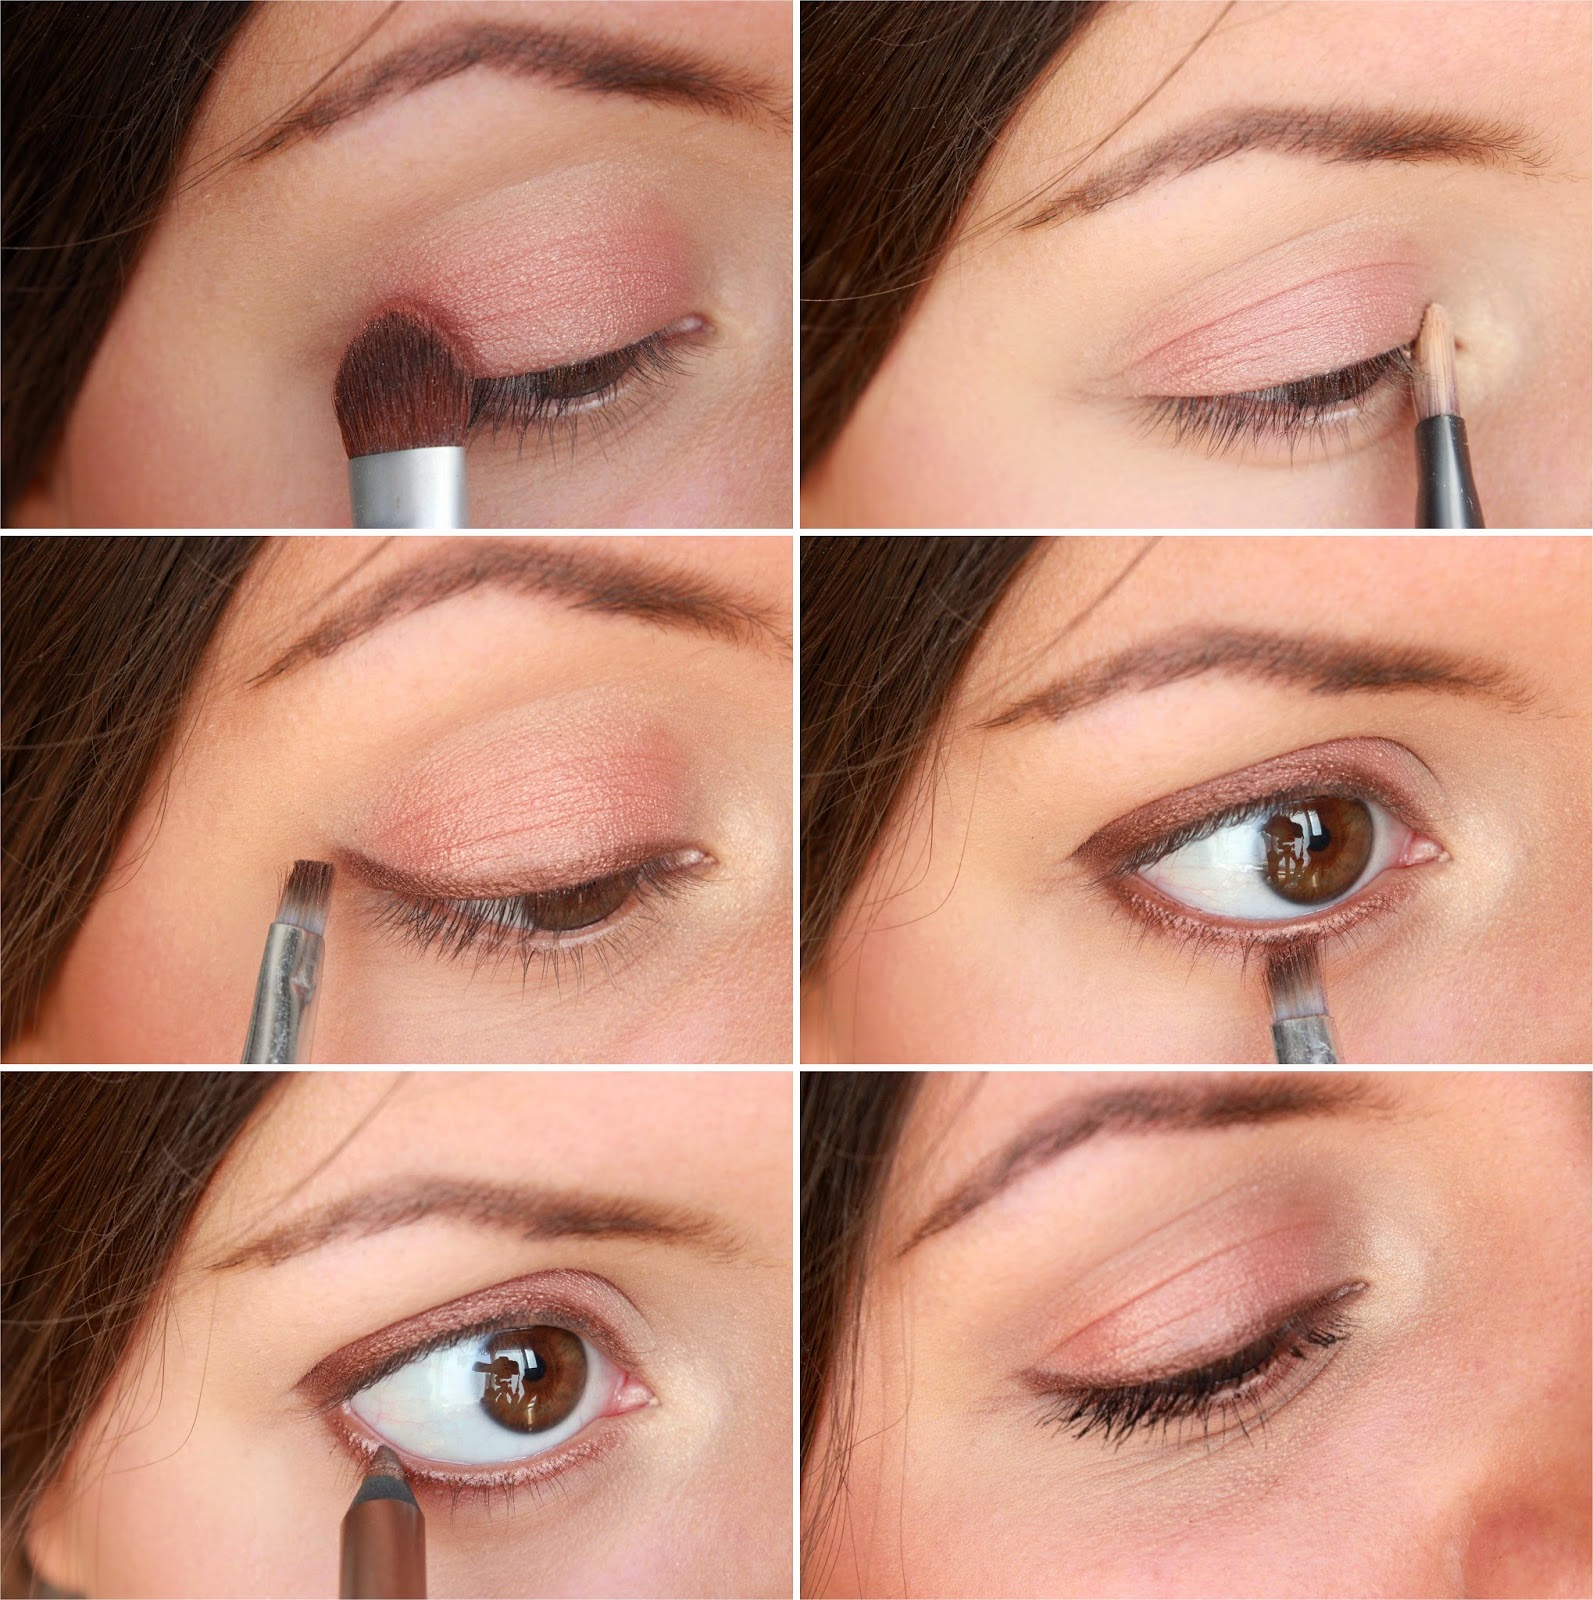 Maquillage simple lumineux tutoriel